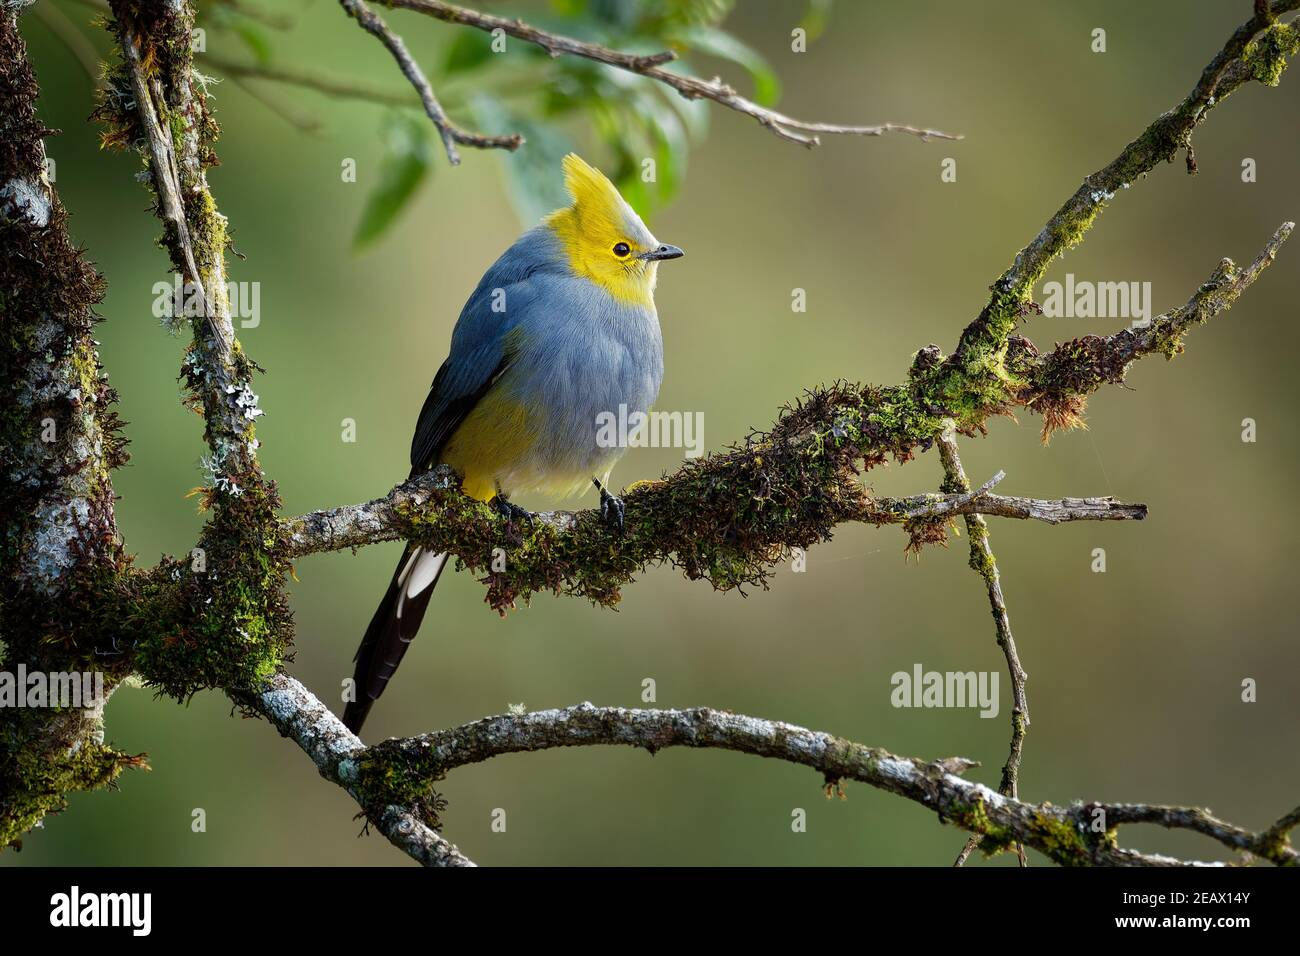 Long-tailed silky-flycatcher - Ptiliogonys caudatus passerine bird in the mountains of Costa Rica and Panama, thrush-sized species related to waxwing, Stock Photo